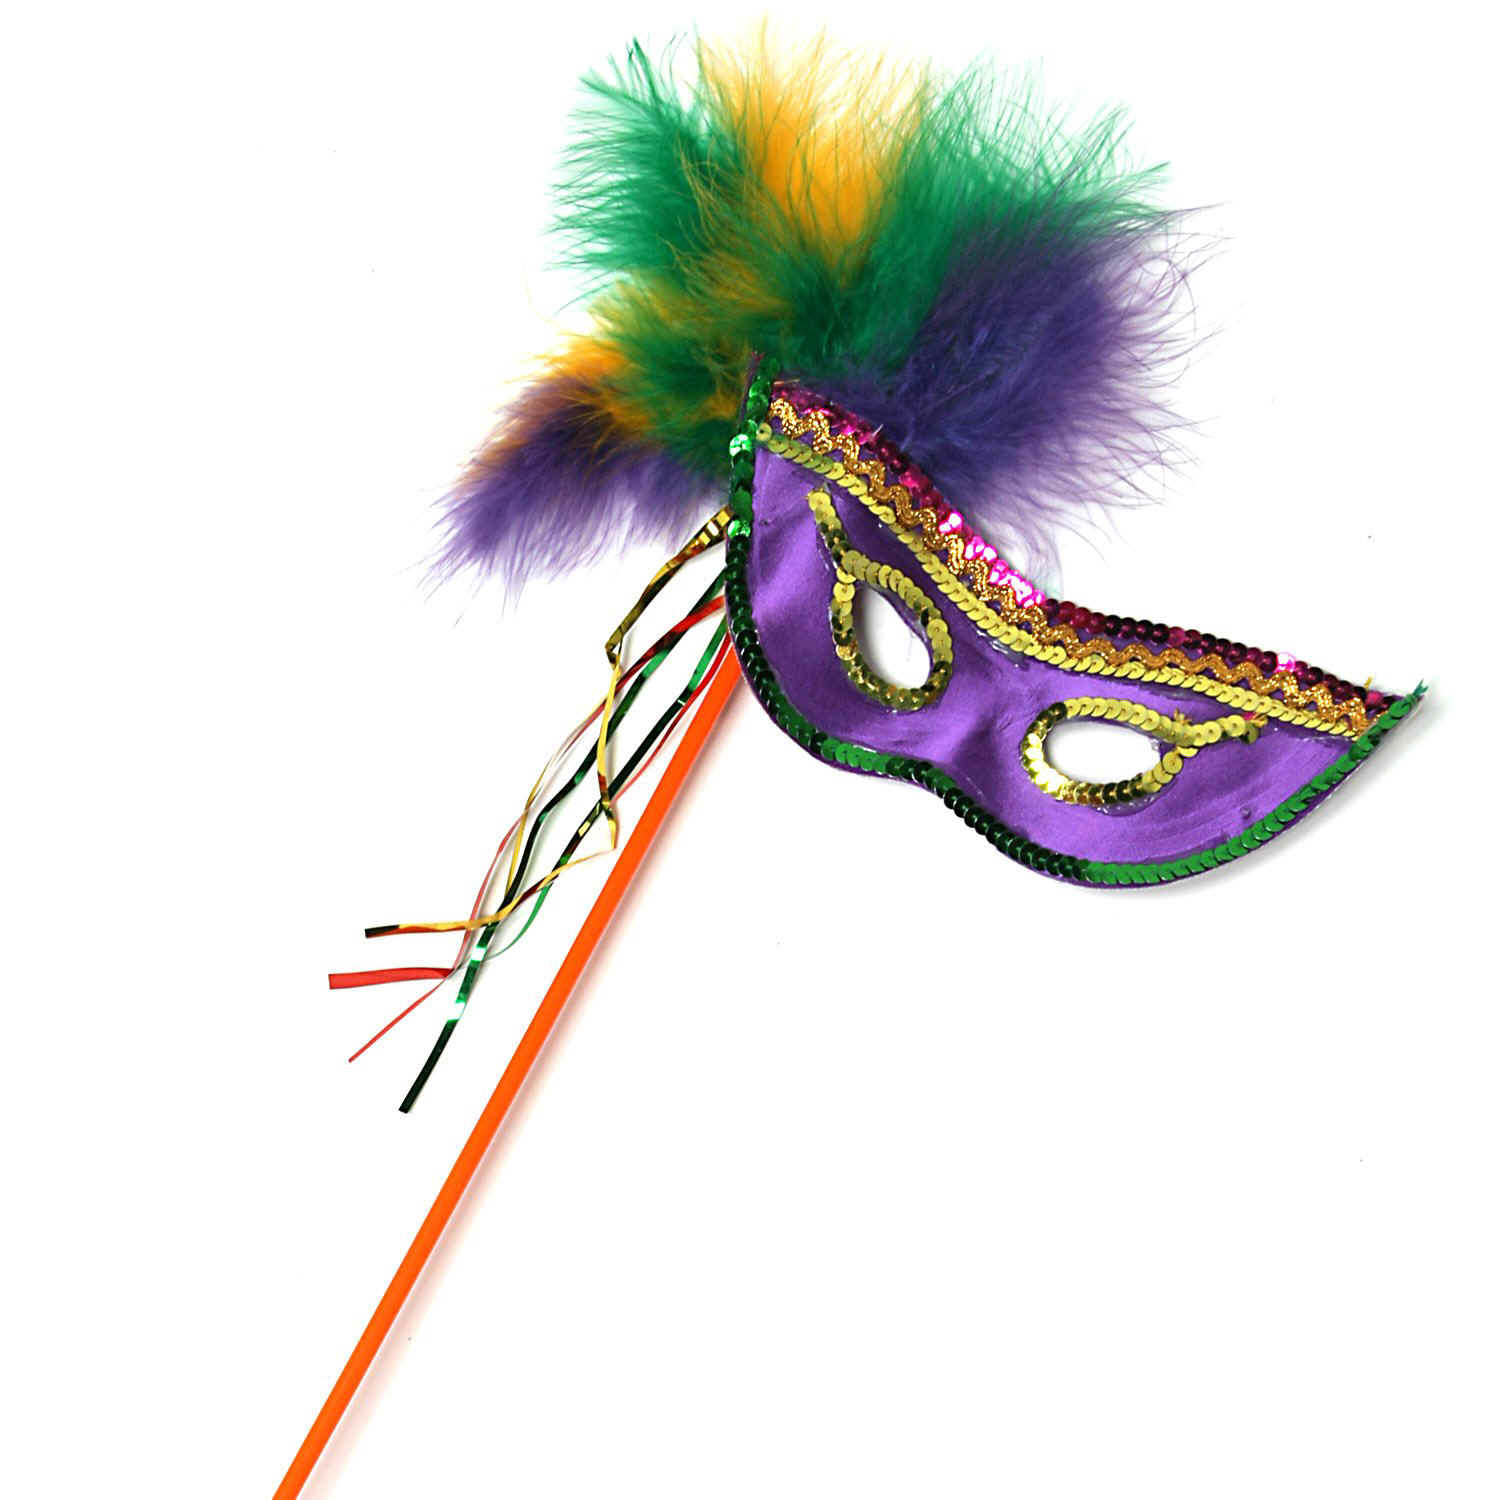 animated free gif: mardi gras mask color carnival e-card graphic art